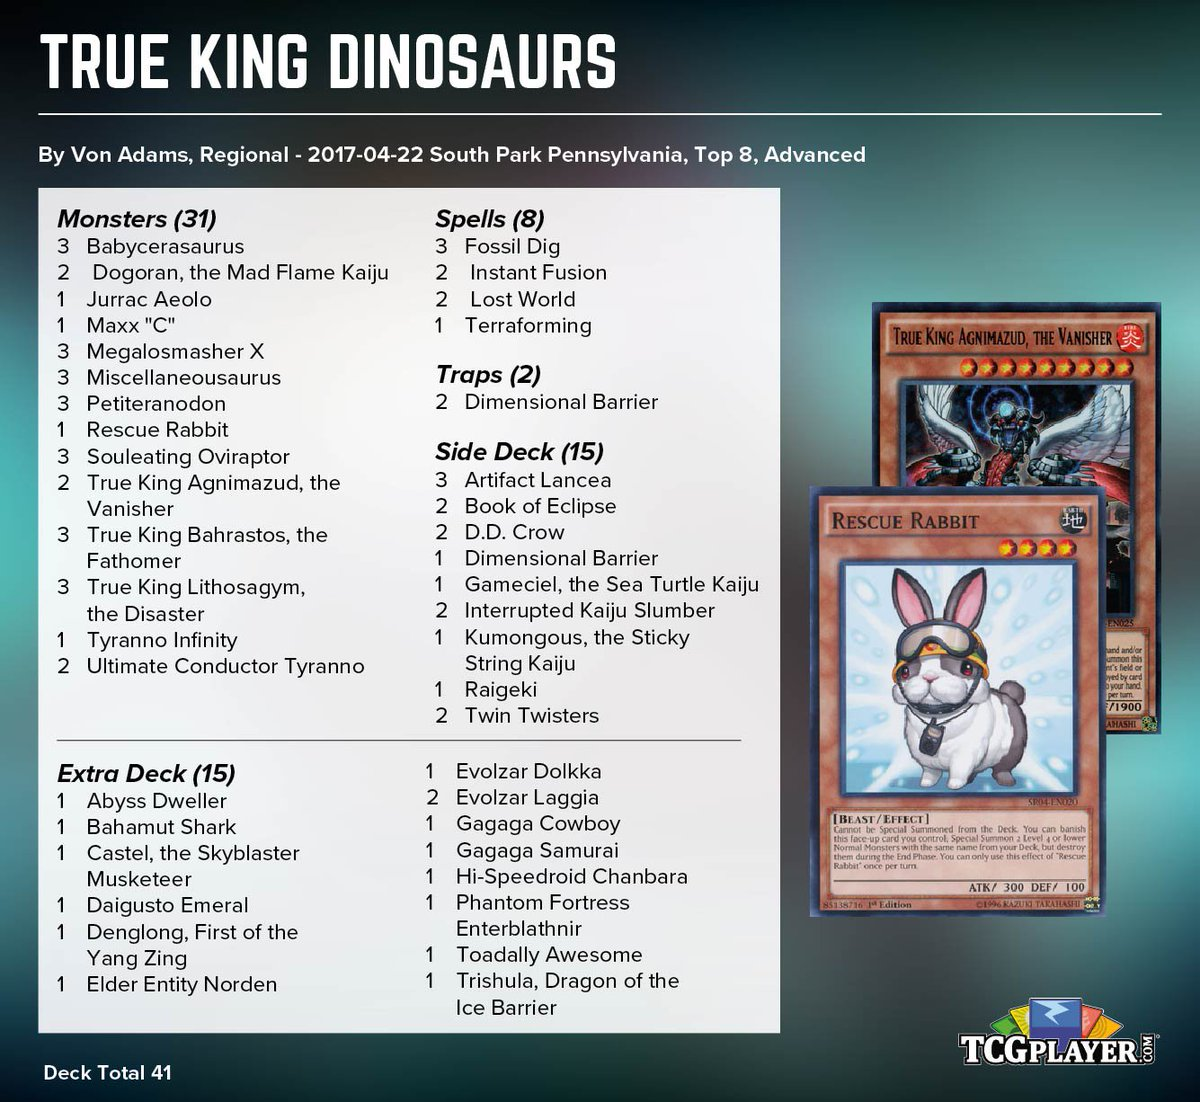 """TCGplayer.com on Twitter: """"Von Adams played this TK Dino deck with Rescue Rabbit to a Top 8 at the Pennsylvania Regional! https://t.co/tgERC8tMqd ..."""